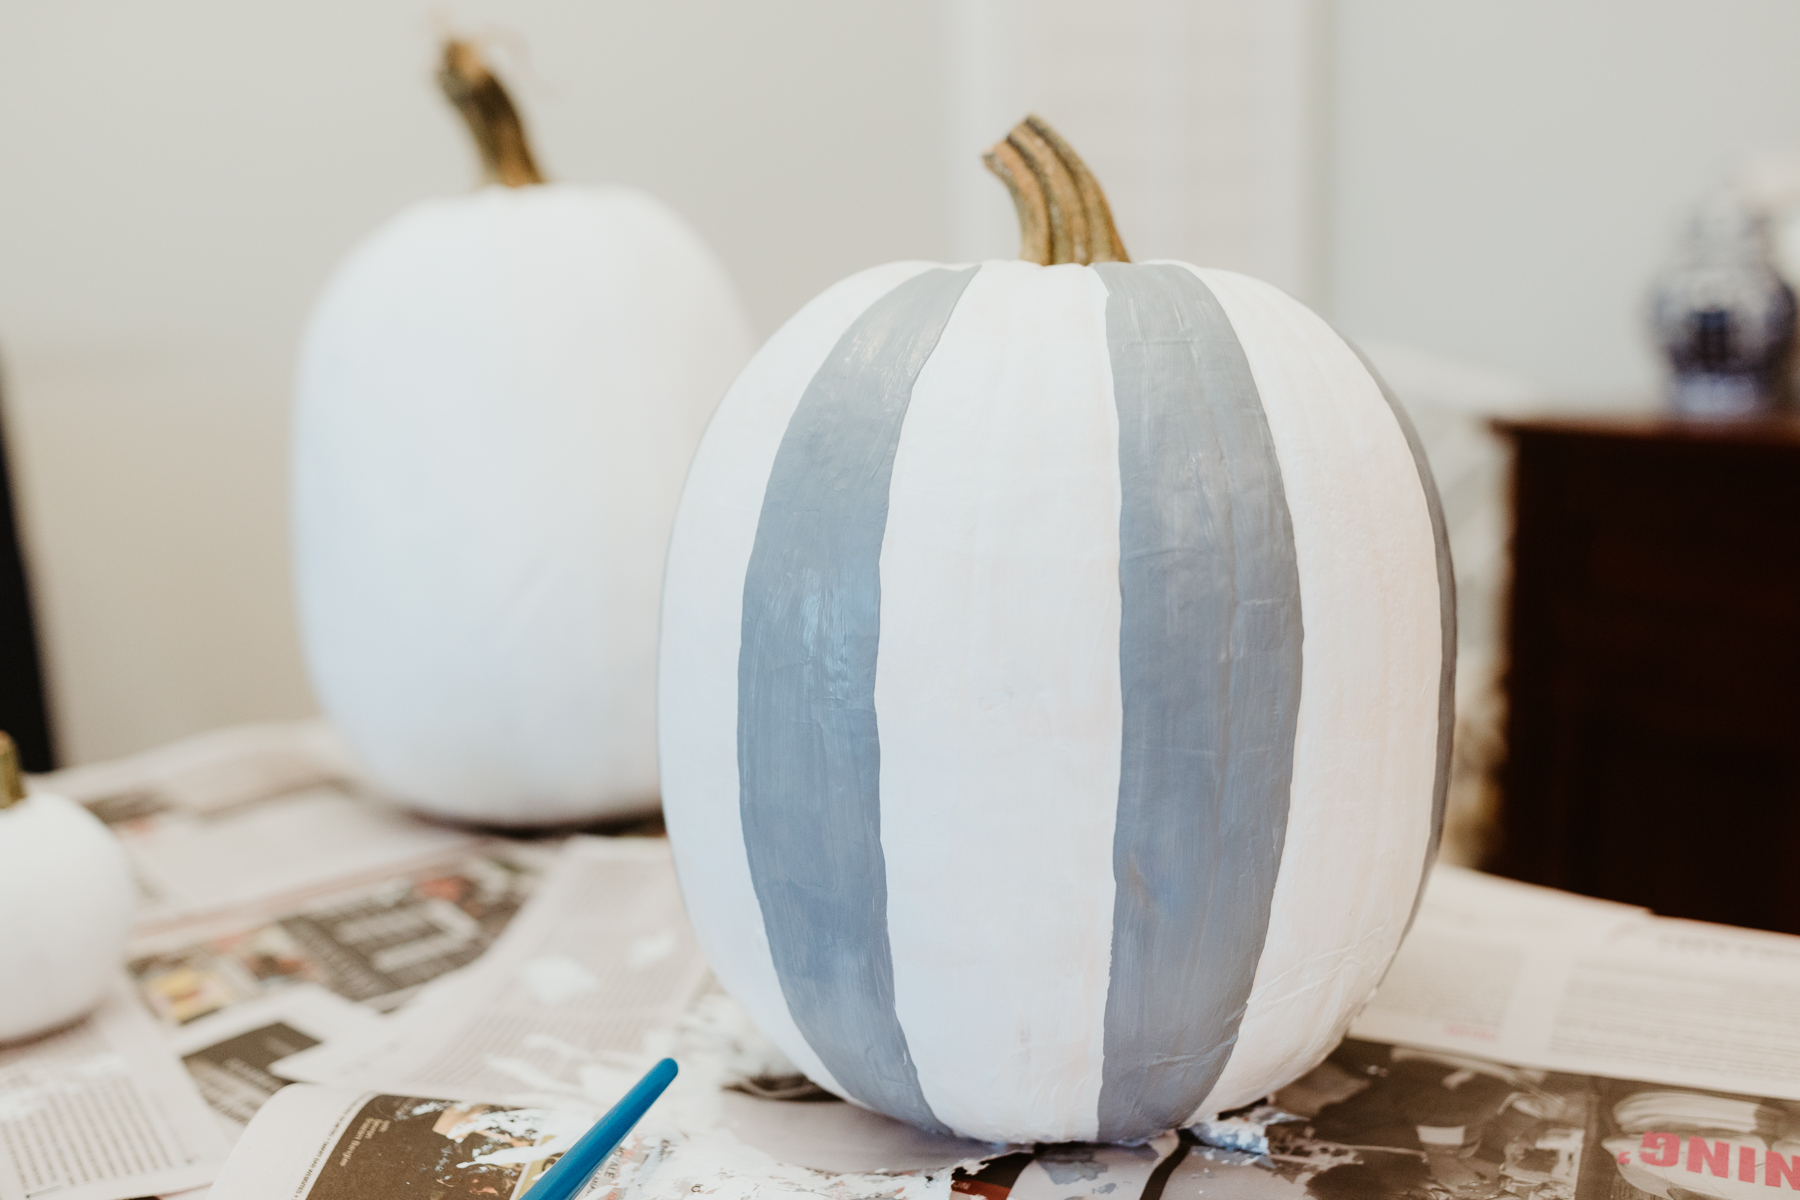 Buffalo plaid pumpkin: On a paper plate, mix the white and black paint to create your desired shade of gray. Then paintvertical stripes following the natural lines of the pumpkin. These lines aren't spaced out perfectly, so don't think of them as borders. Simply use them as guides!